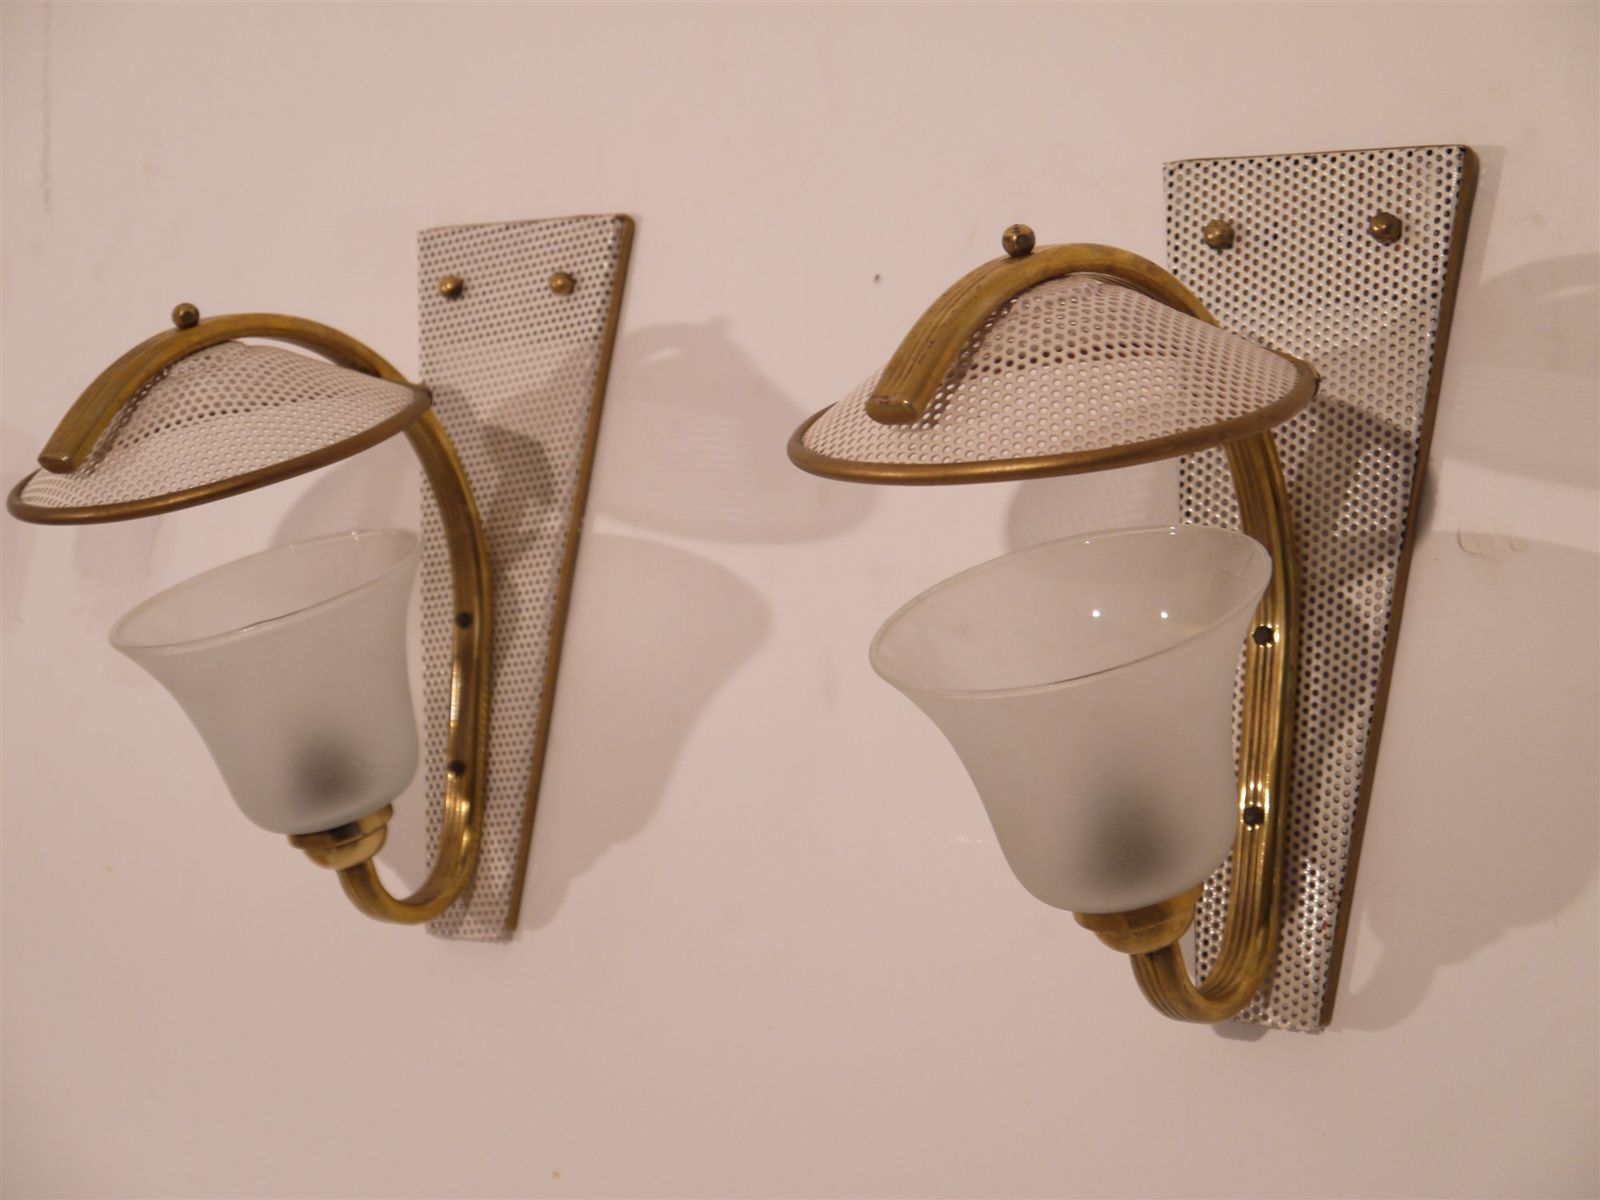 Vintage Wall Sconces In Brass And Perforated Metal, Set Of 2